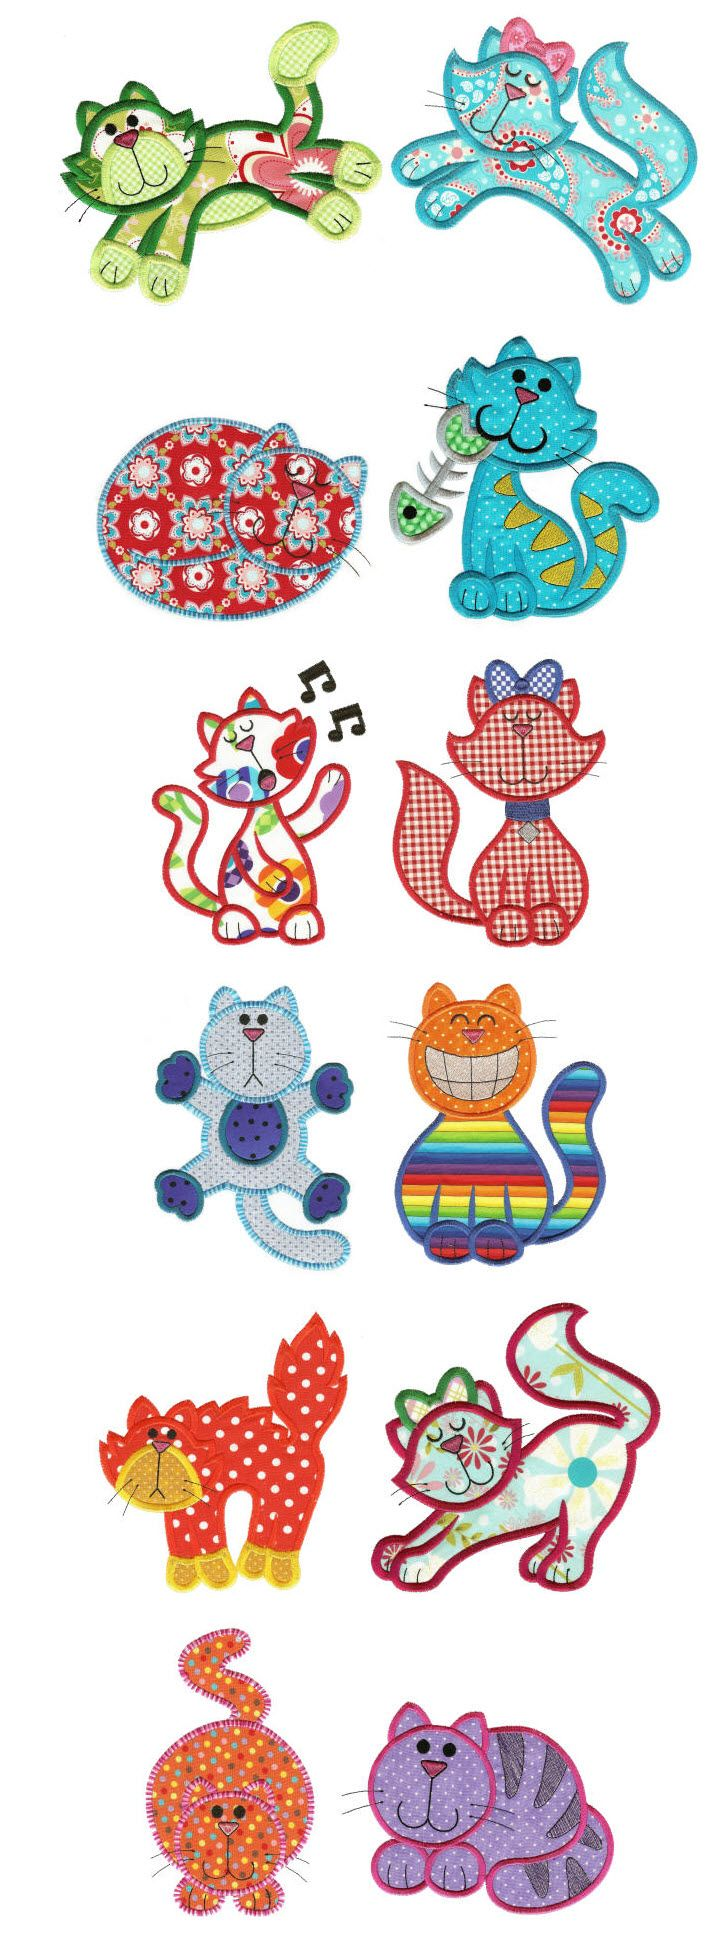 Embroidery | Free Machine Embroidery Designs | Crazy Cats Applique